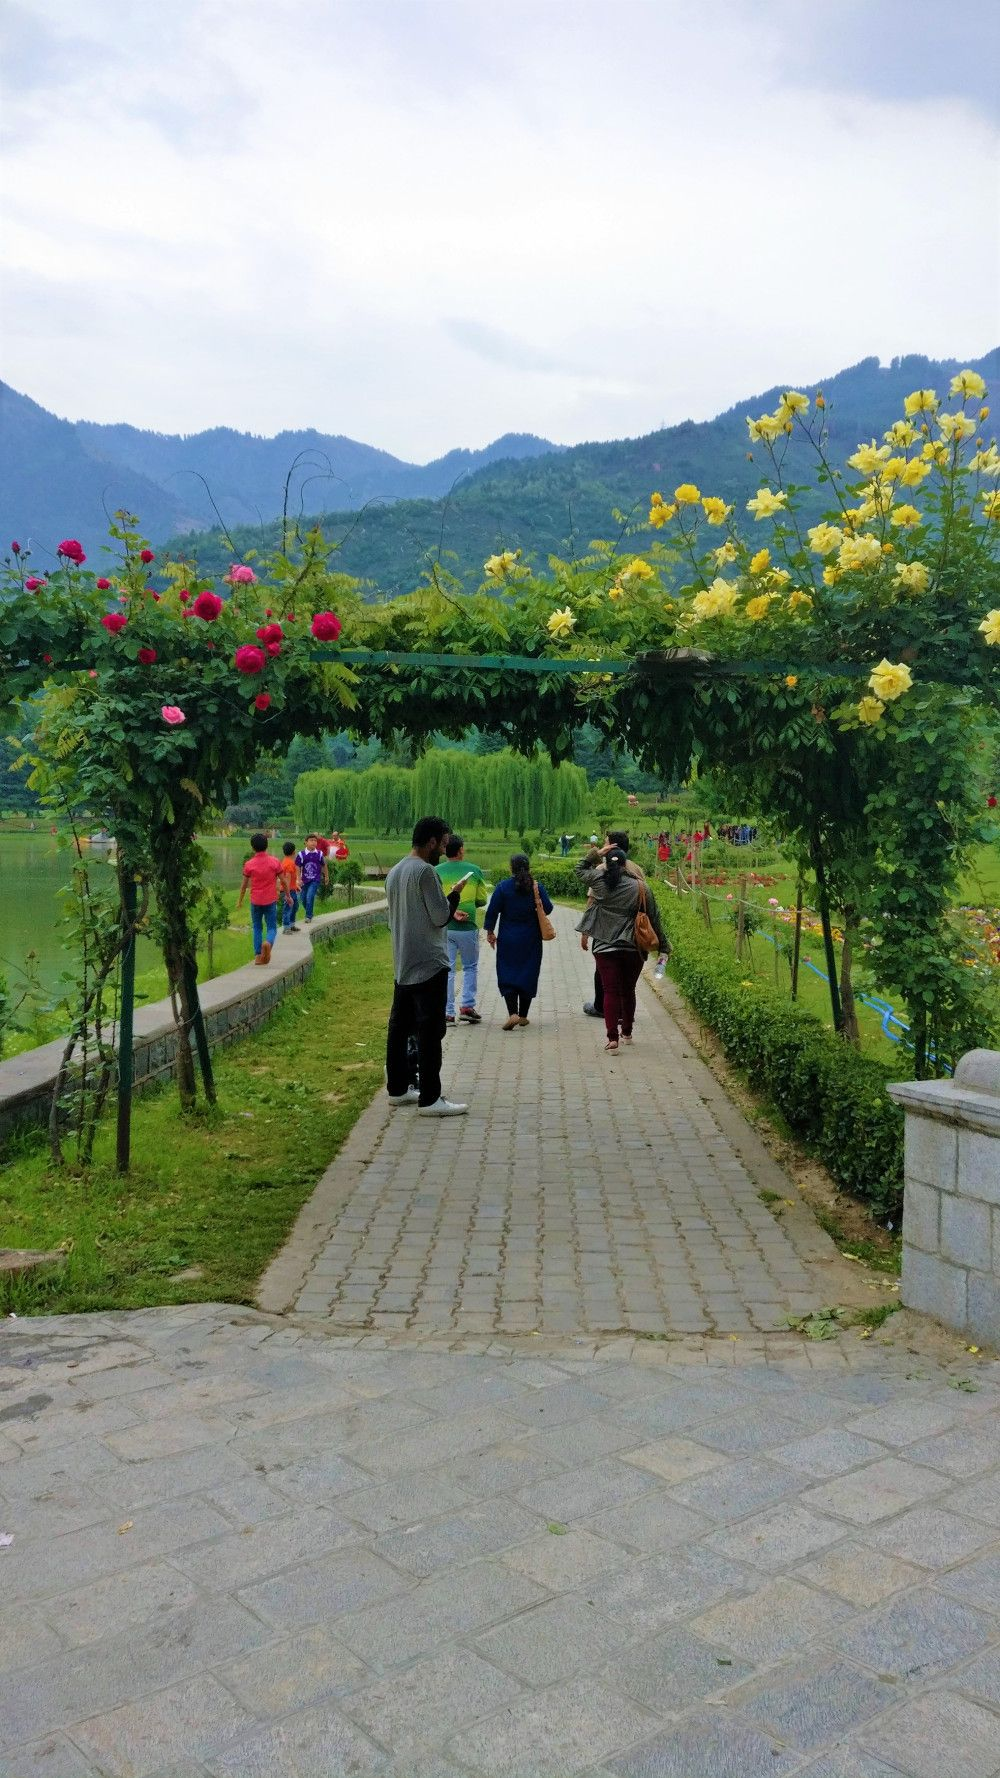 Srinagar the summer capital of jammu kashmir india travel beautiful flowers and trees lush green gardens and terraced terrains in the lap of mountains zabarwan ranges thats the beauty of srinagar izmirmasajfo